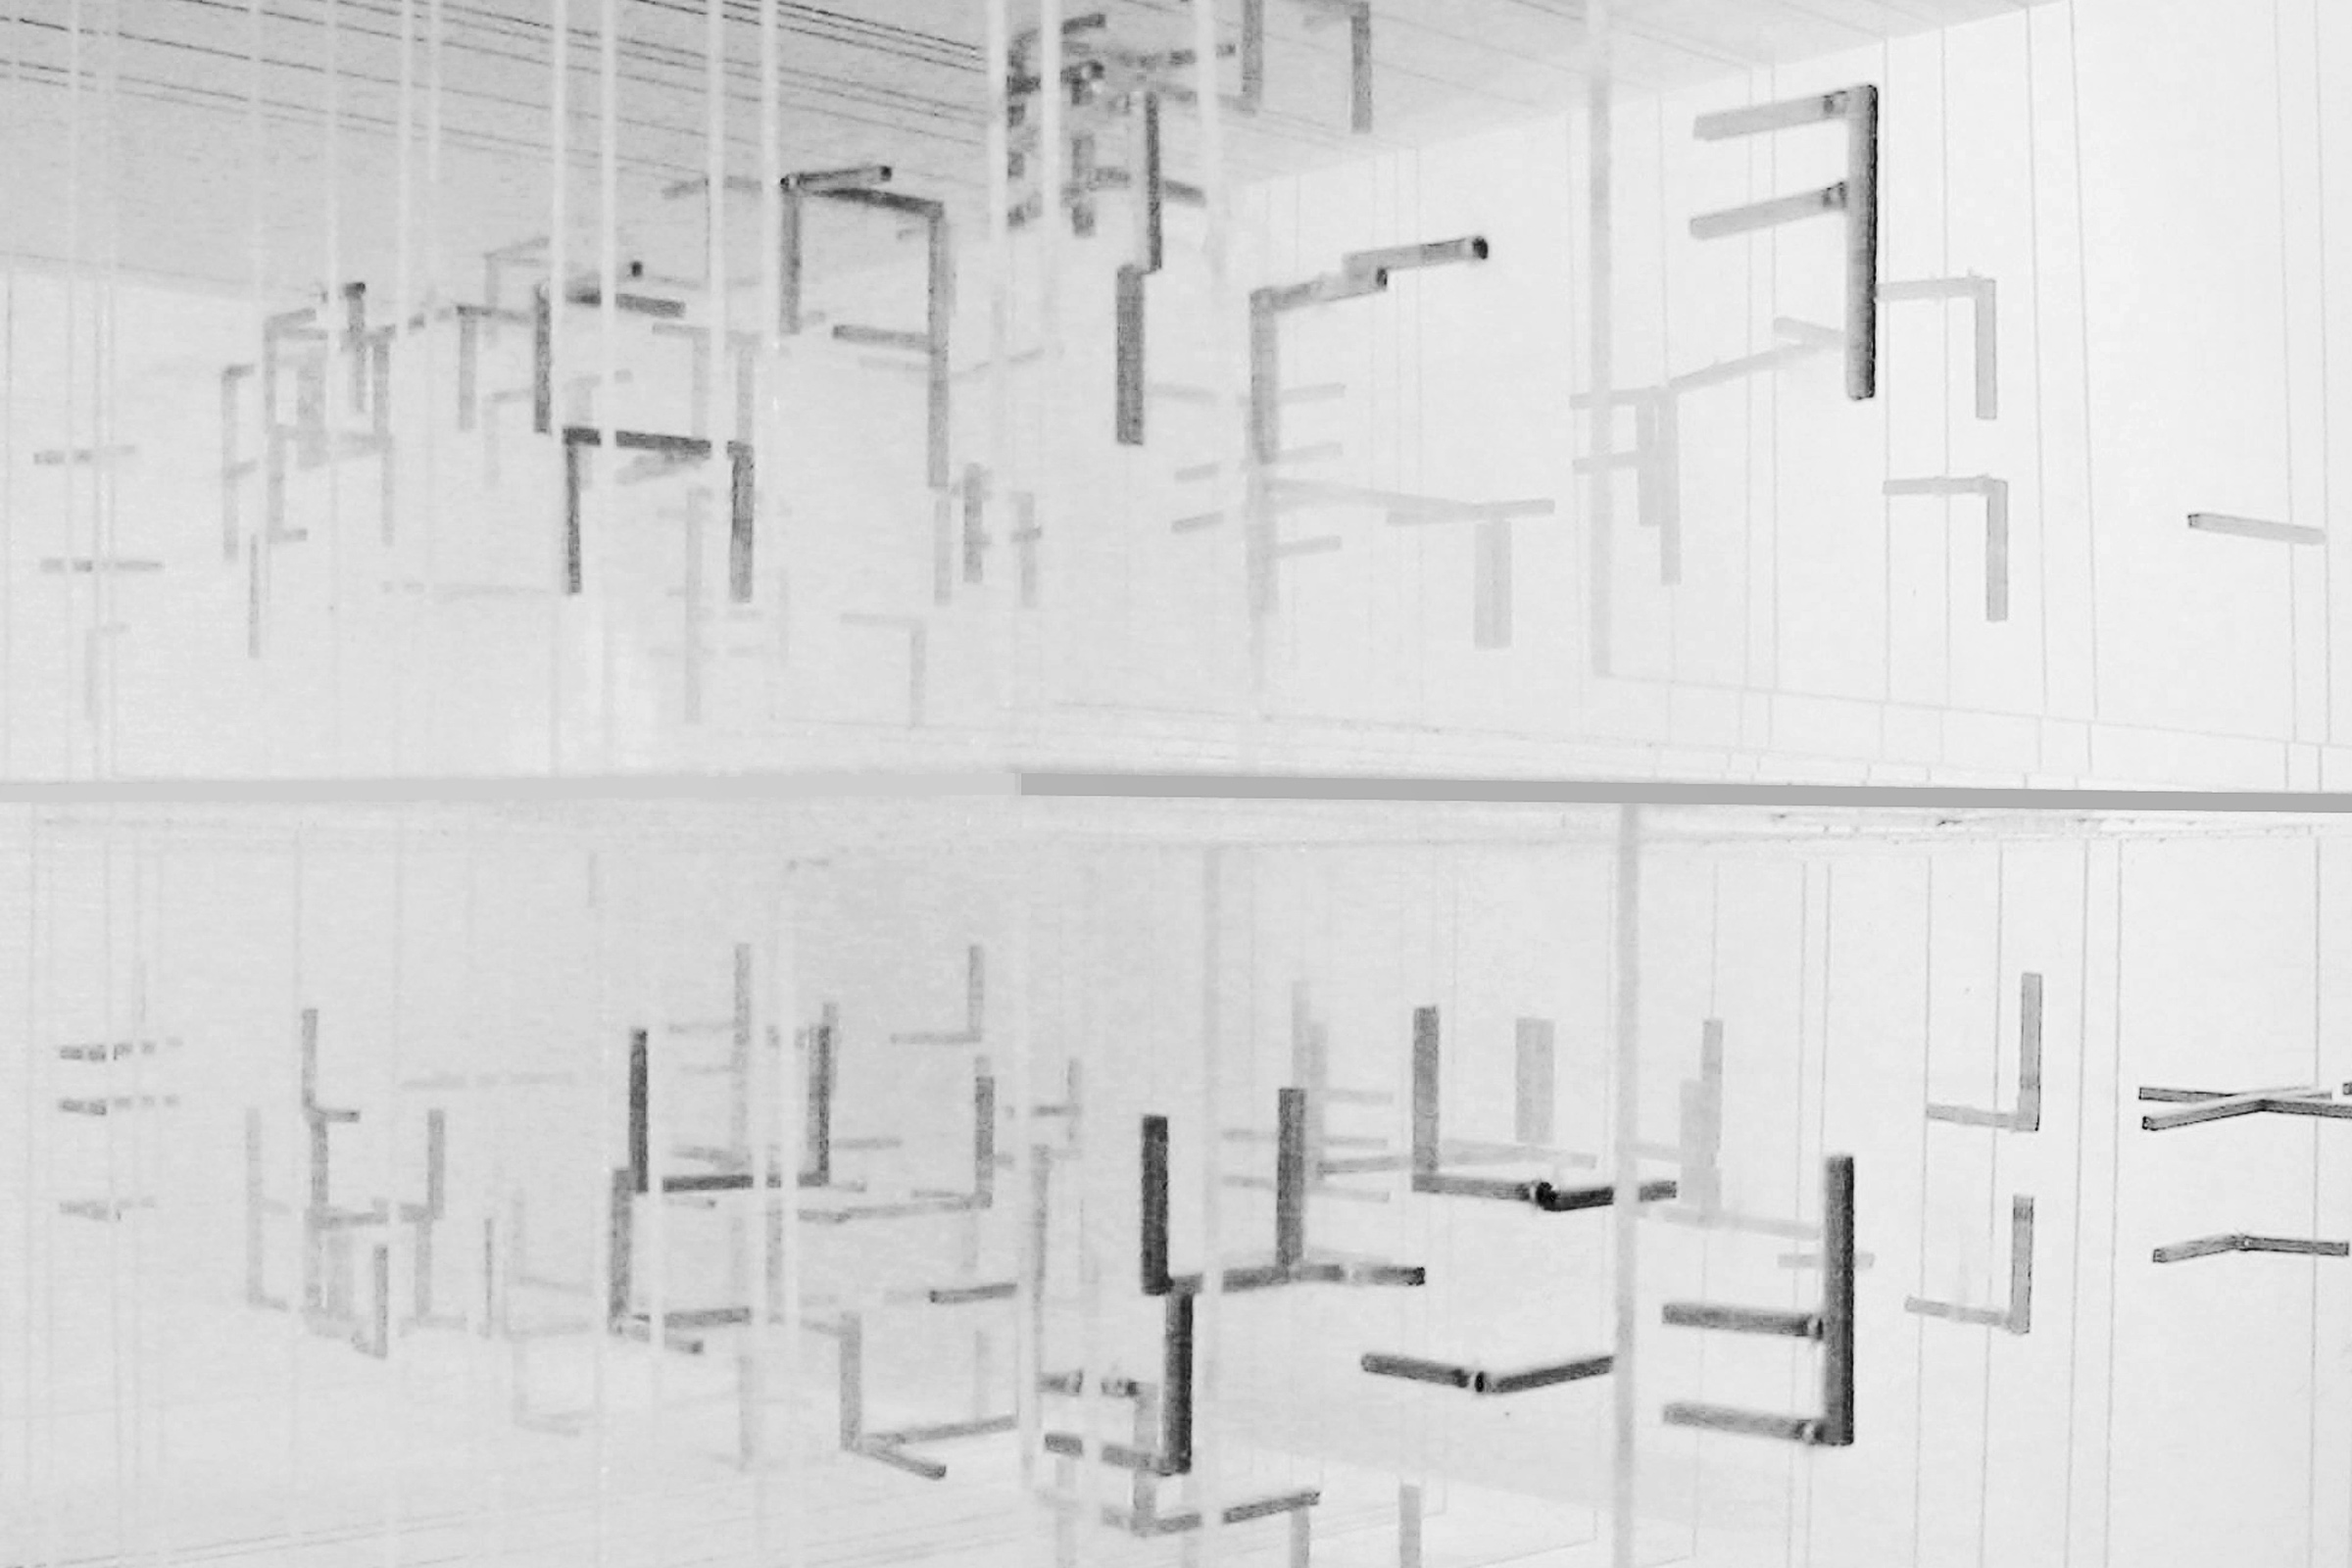 Mies Remix model oblique view